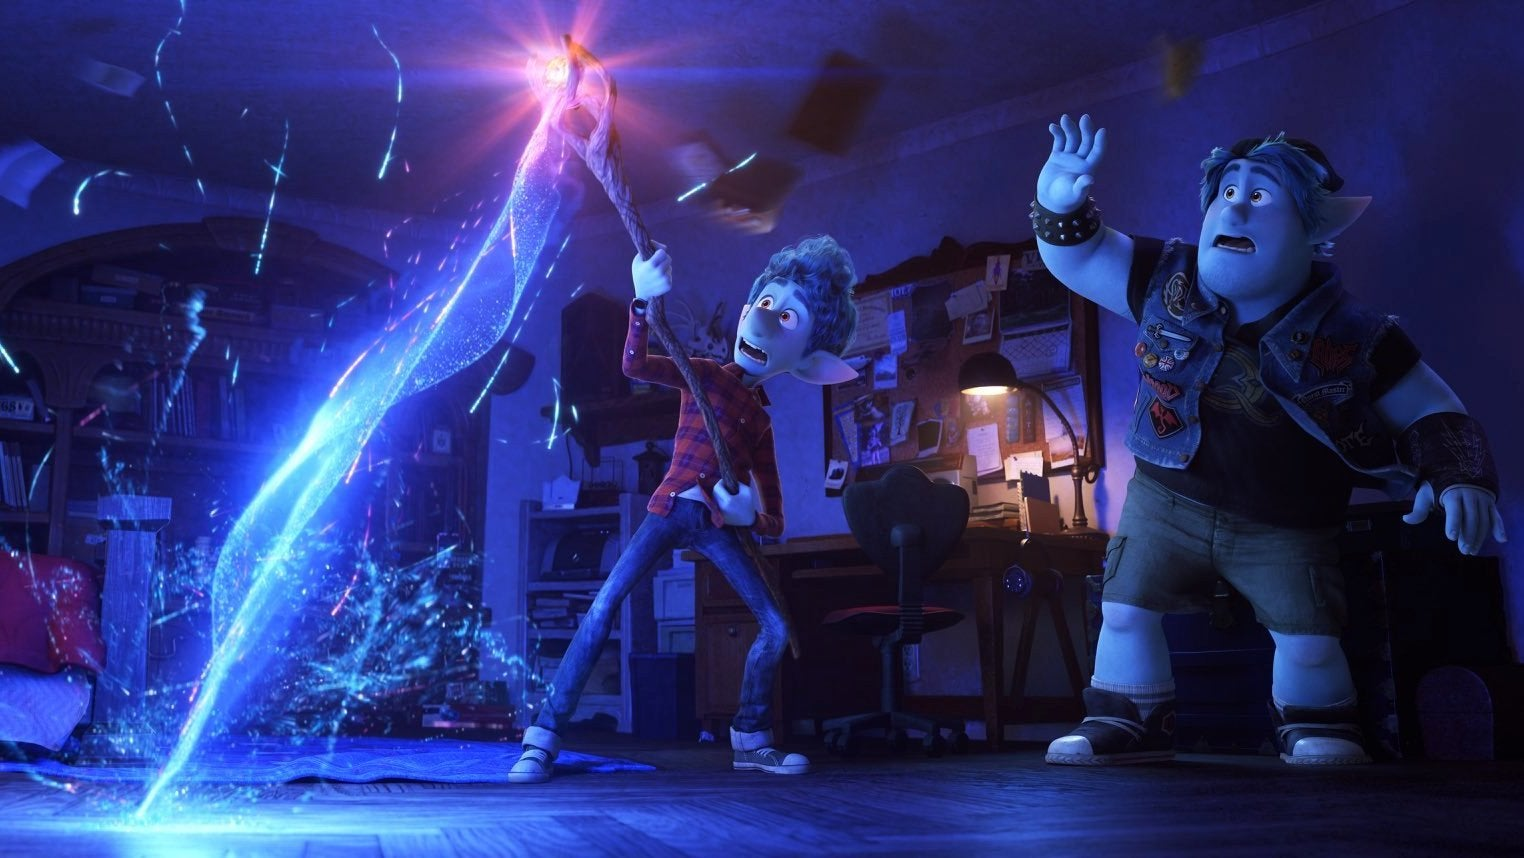 We Saw 8 Minutes Of Pixar's Onward, About Brothers Questing To Bring Their Dad Back To Life